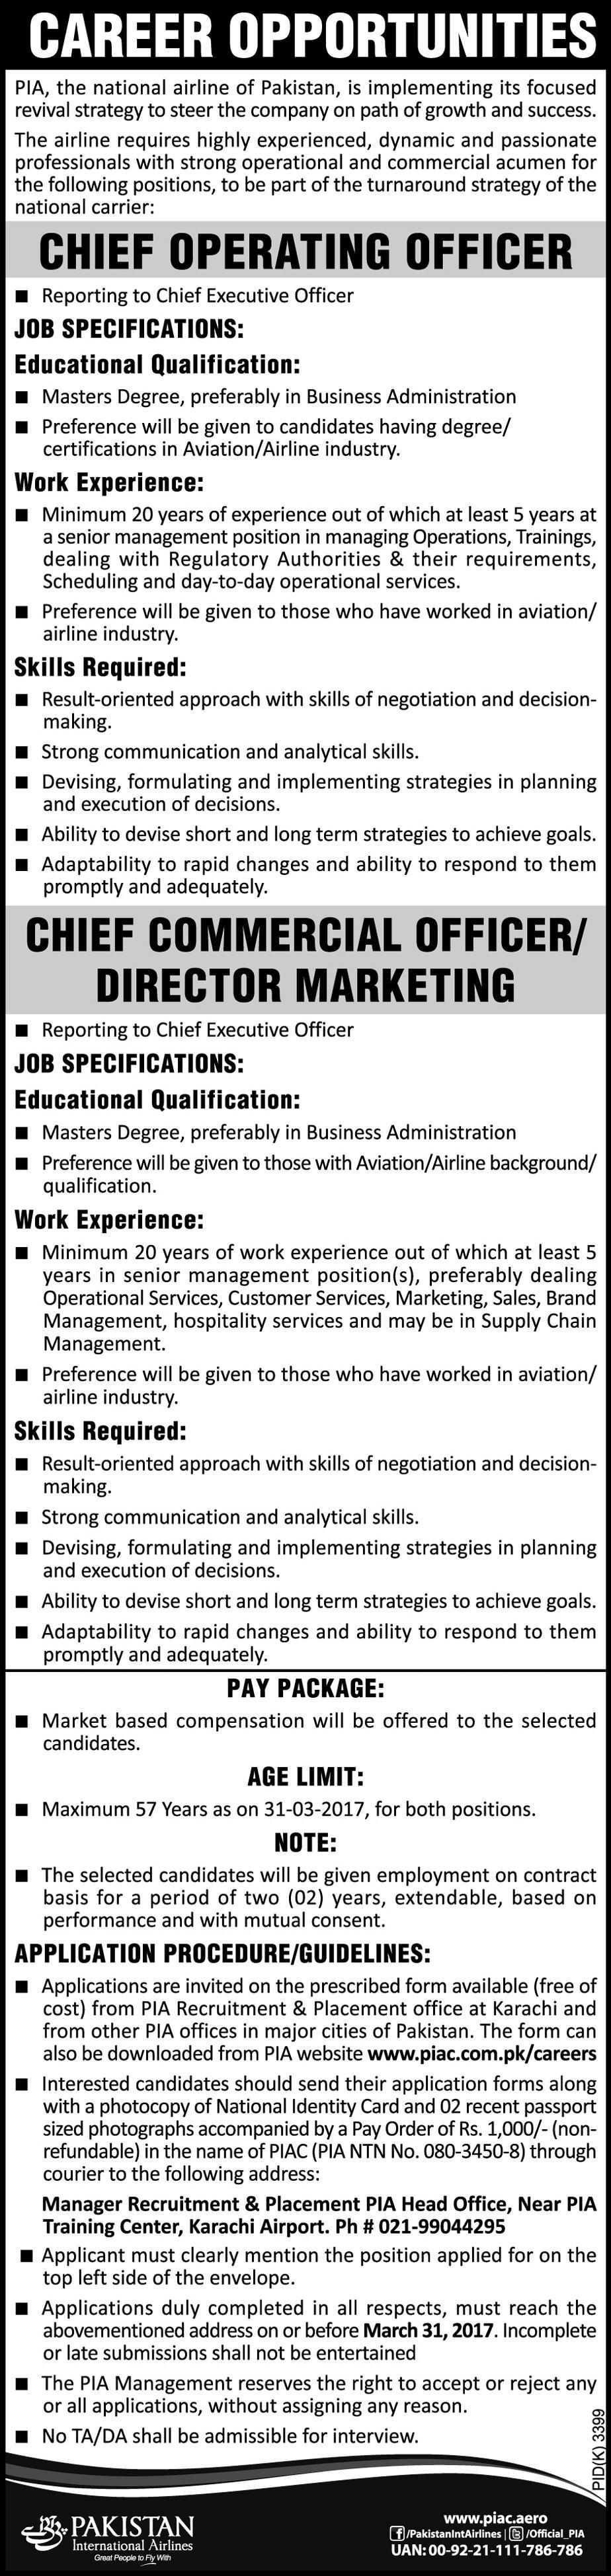 jobs advertisement for master degree holders salary pia jobs 2017 advertisement for master degree holders salary packages